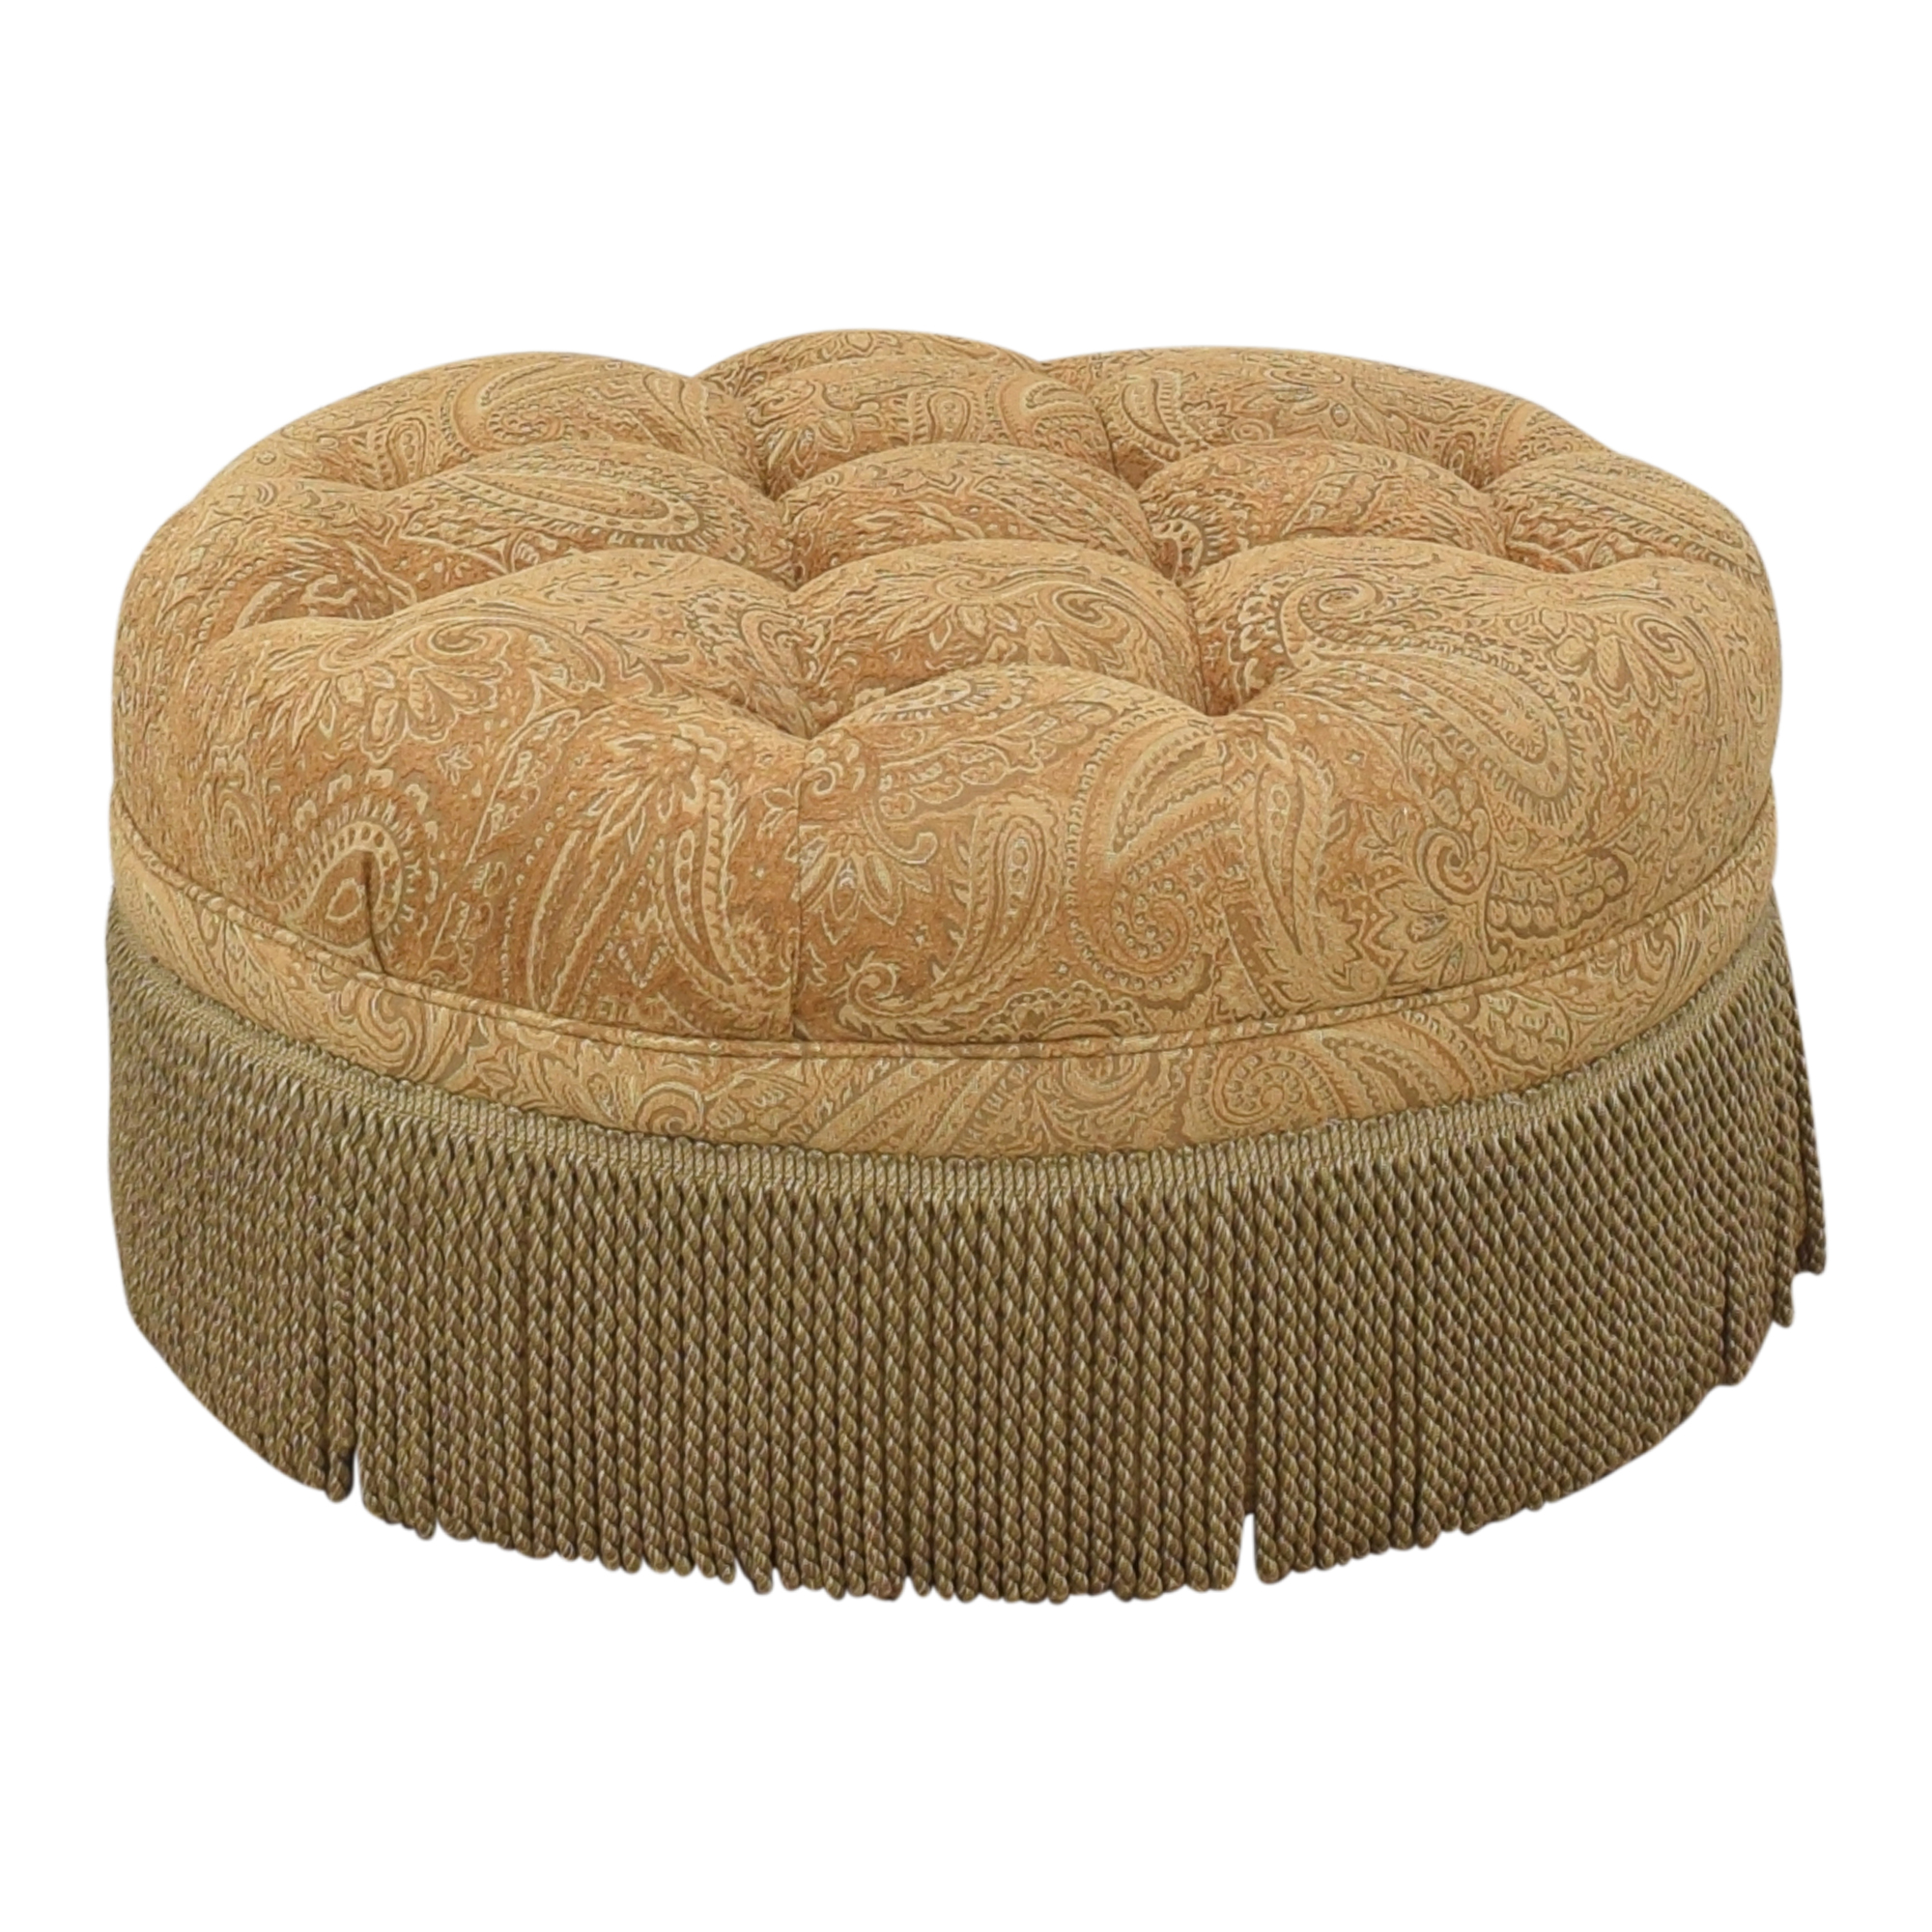 Round Tufted Fringe Ottoman Chairs